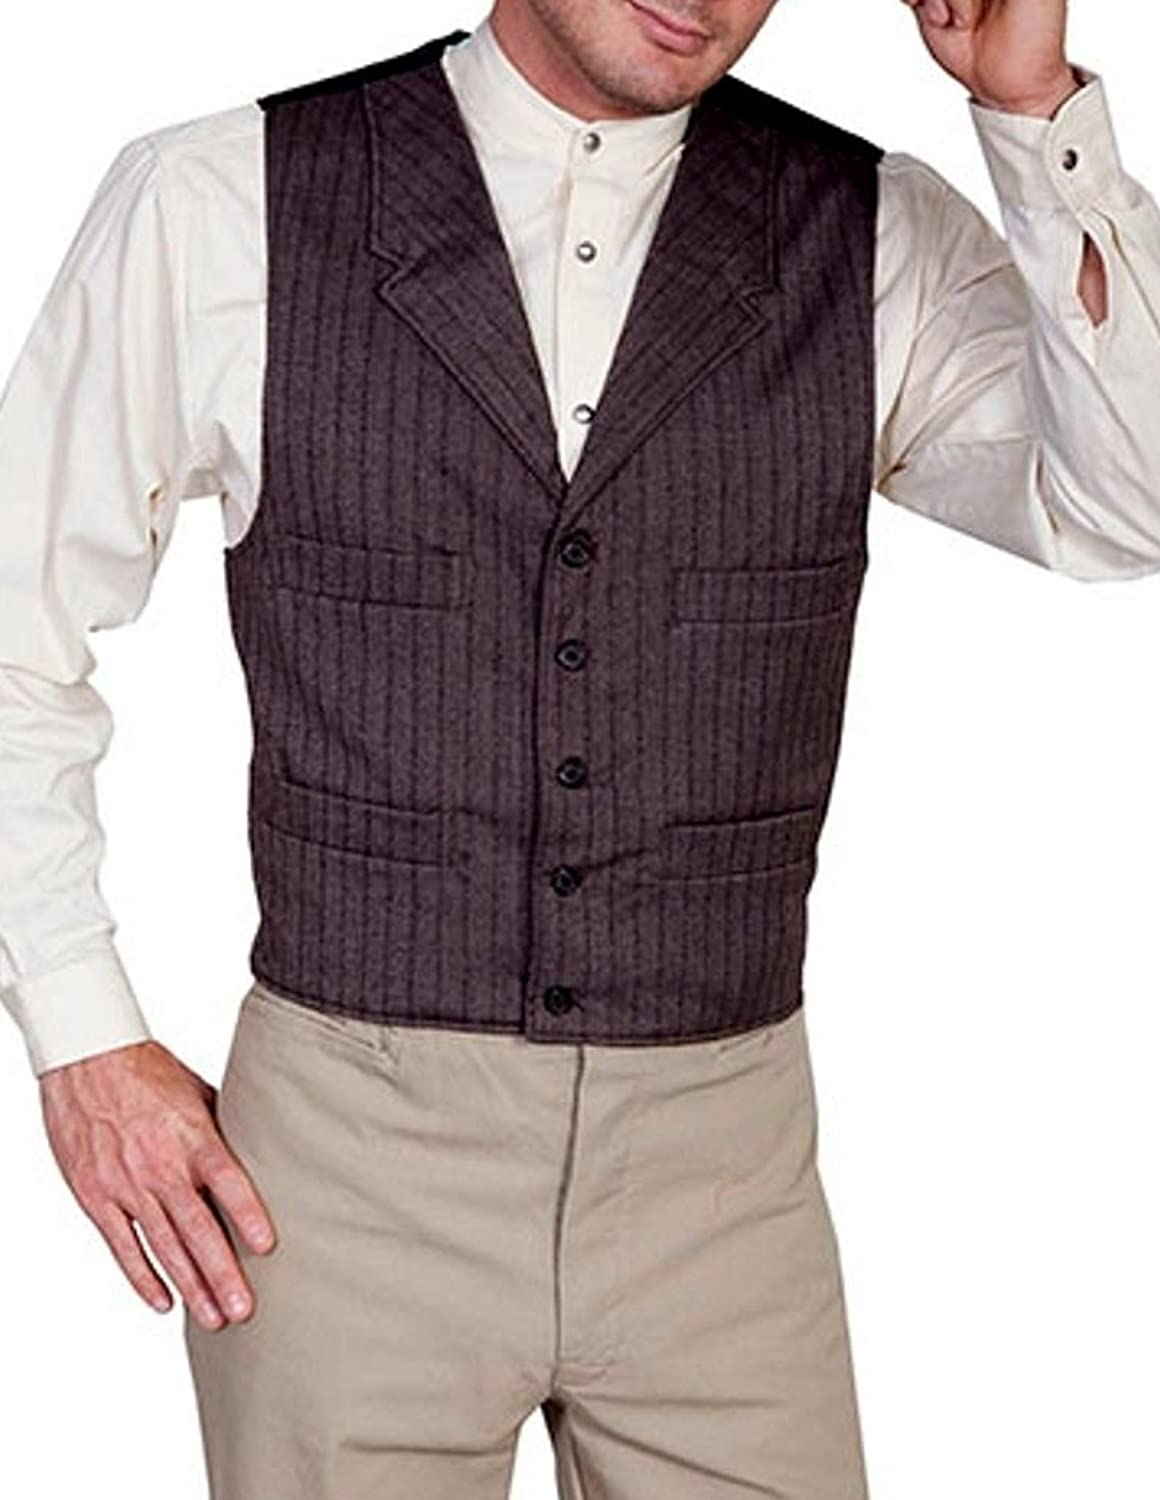 Men's Vintage Vests, Sweater Vests Wahmaker By Scully Mens Old West Four Pocket Striped Vest - 541164-Gry $146.37 AT vintagedancer.com